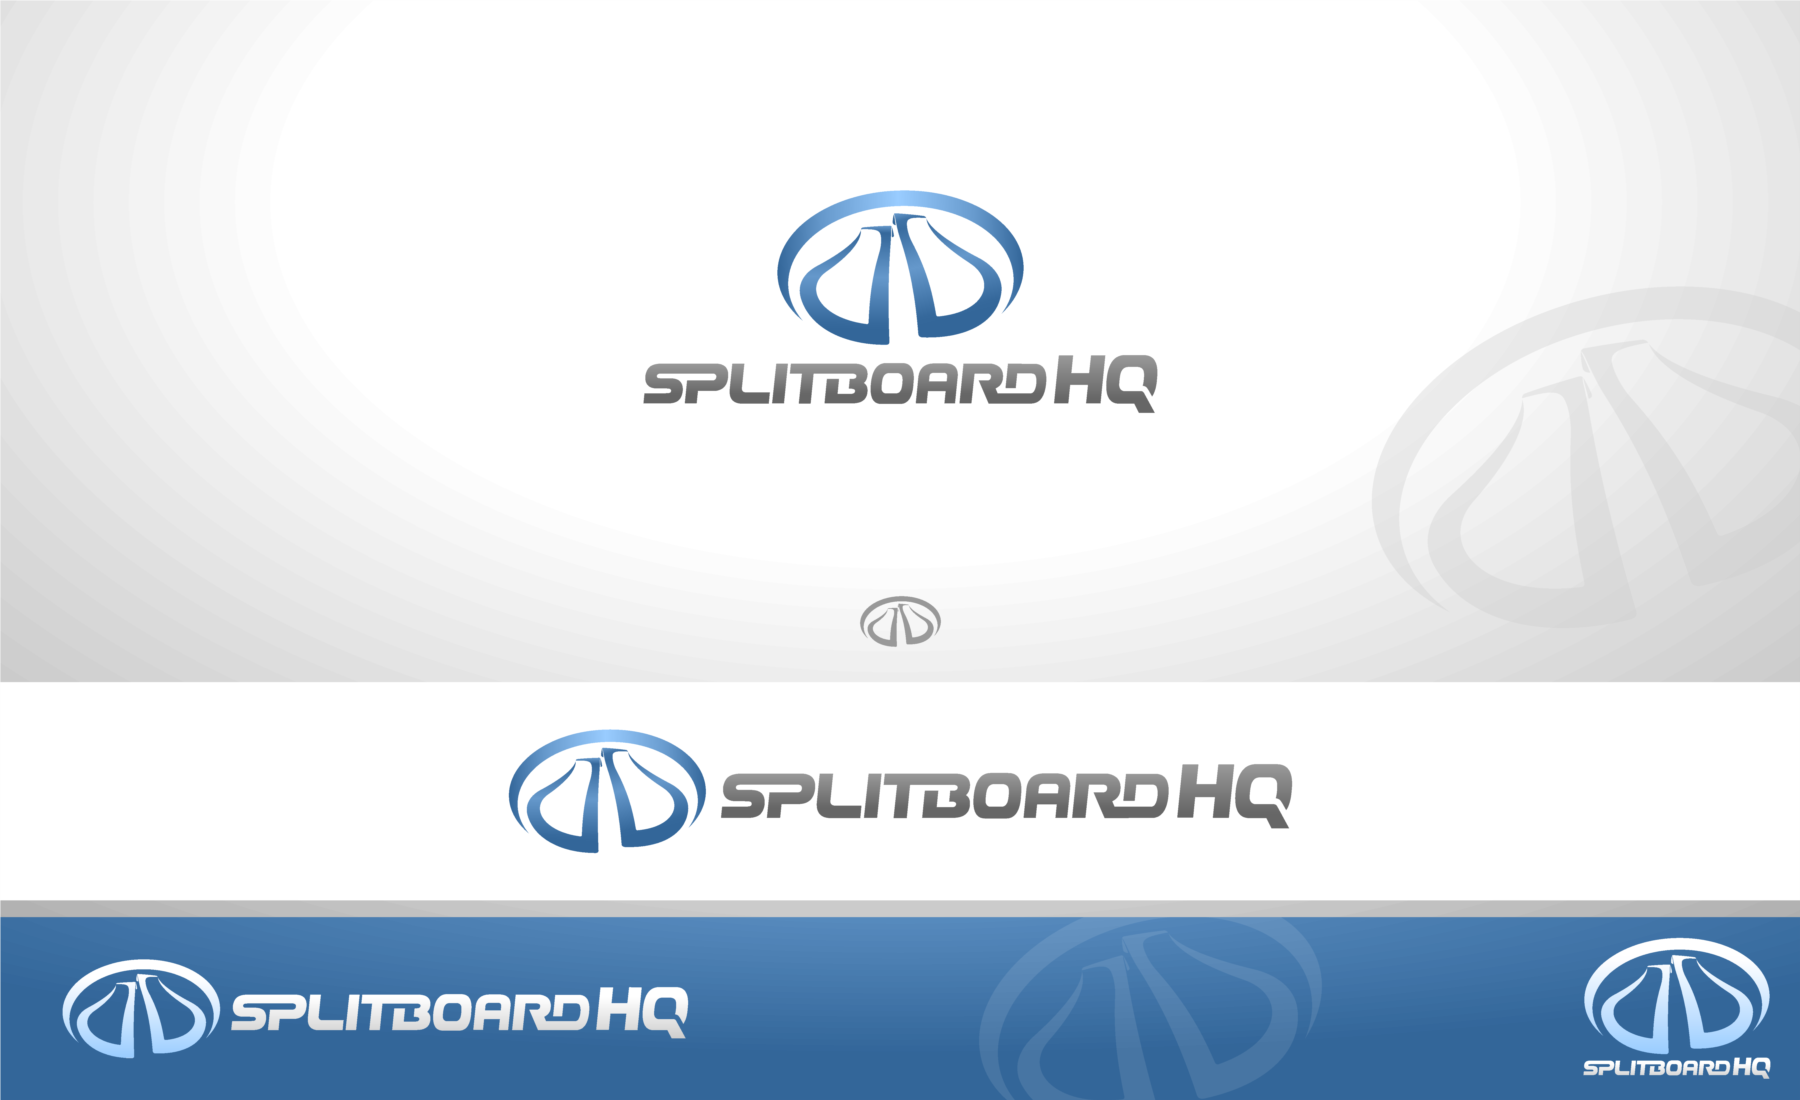 Help Splitboard HQ with a new logo